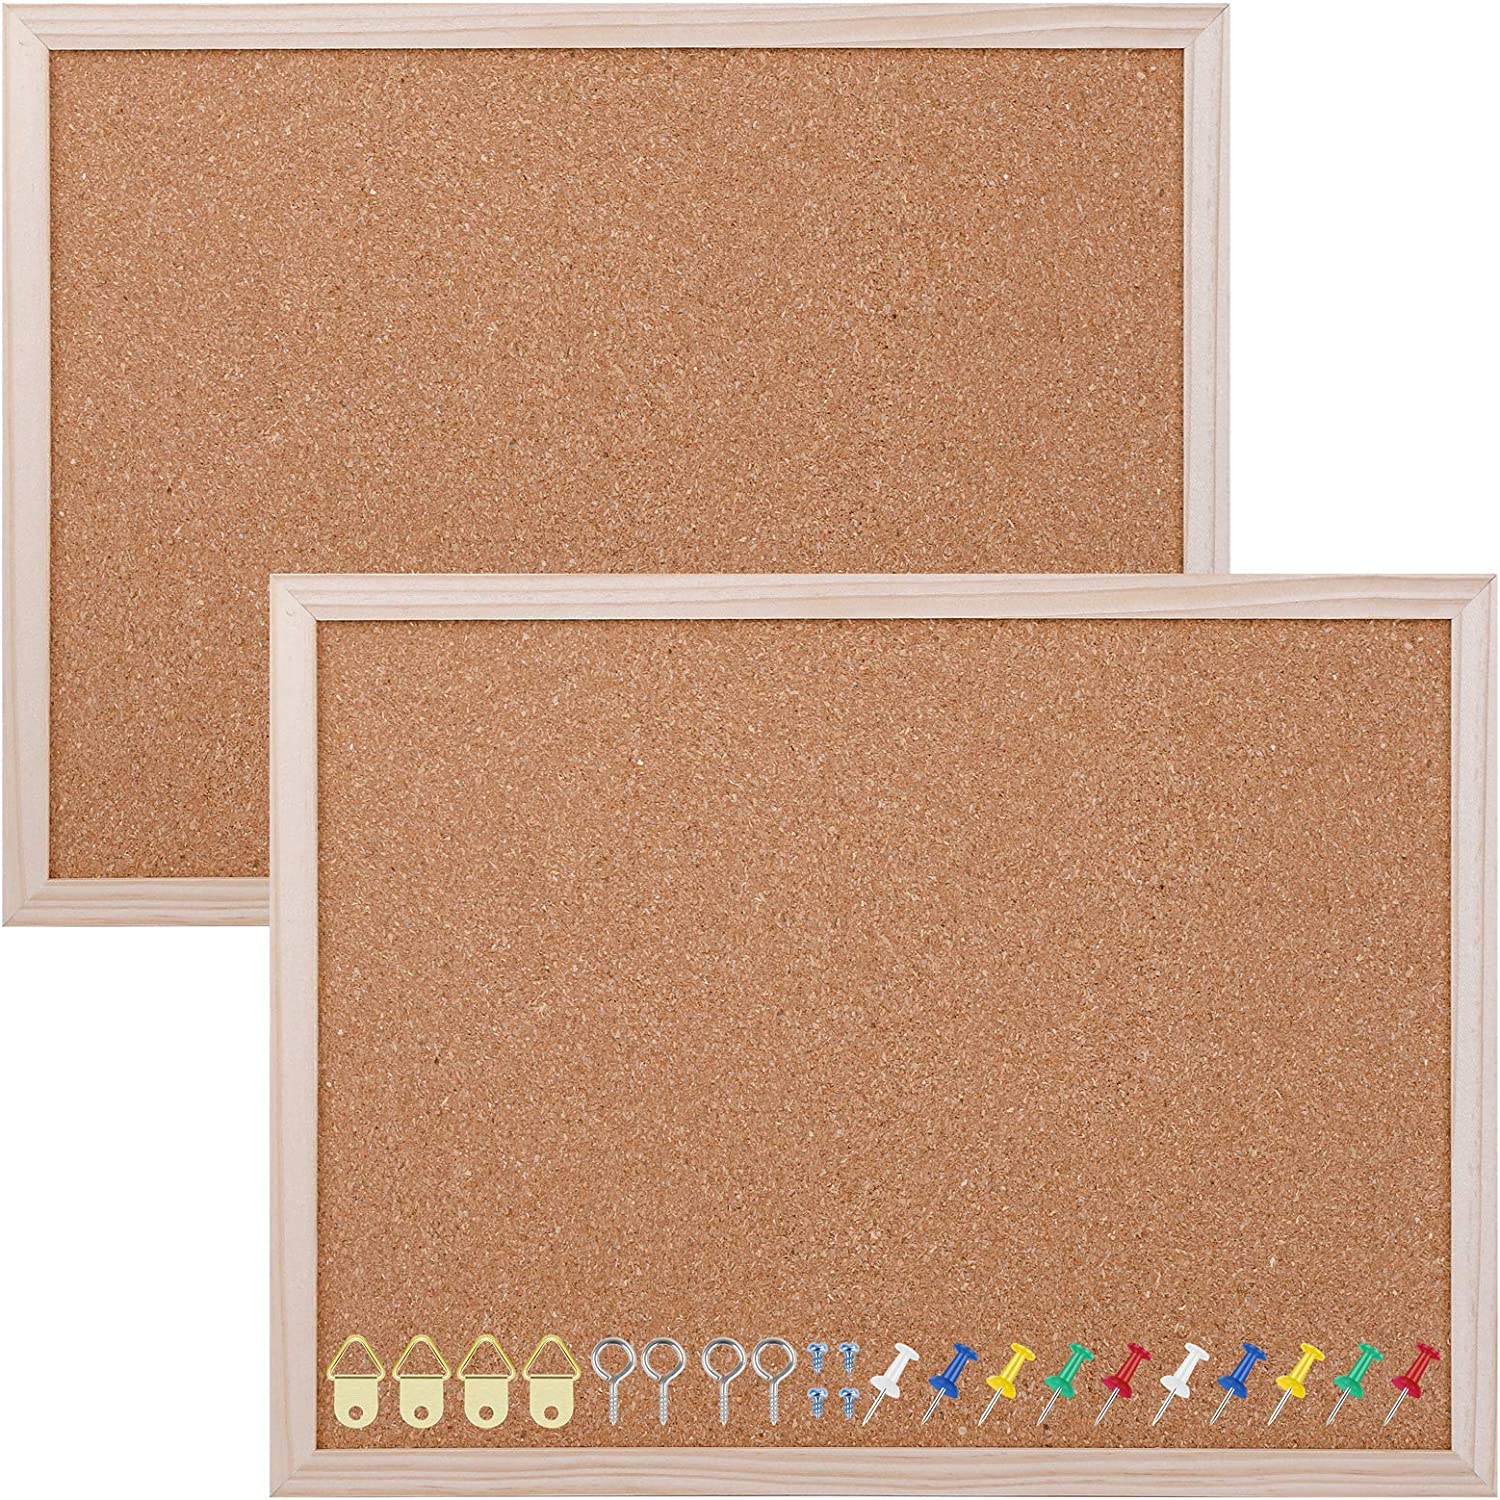 Aodaer Pack of 2 Cork Board Bulletin Board Notice Pin Board Square Pin Board Wall Mounted Cork Board for Office Home and School, 15.7 x 12 Inches, Natural